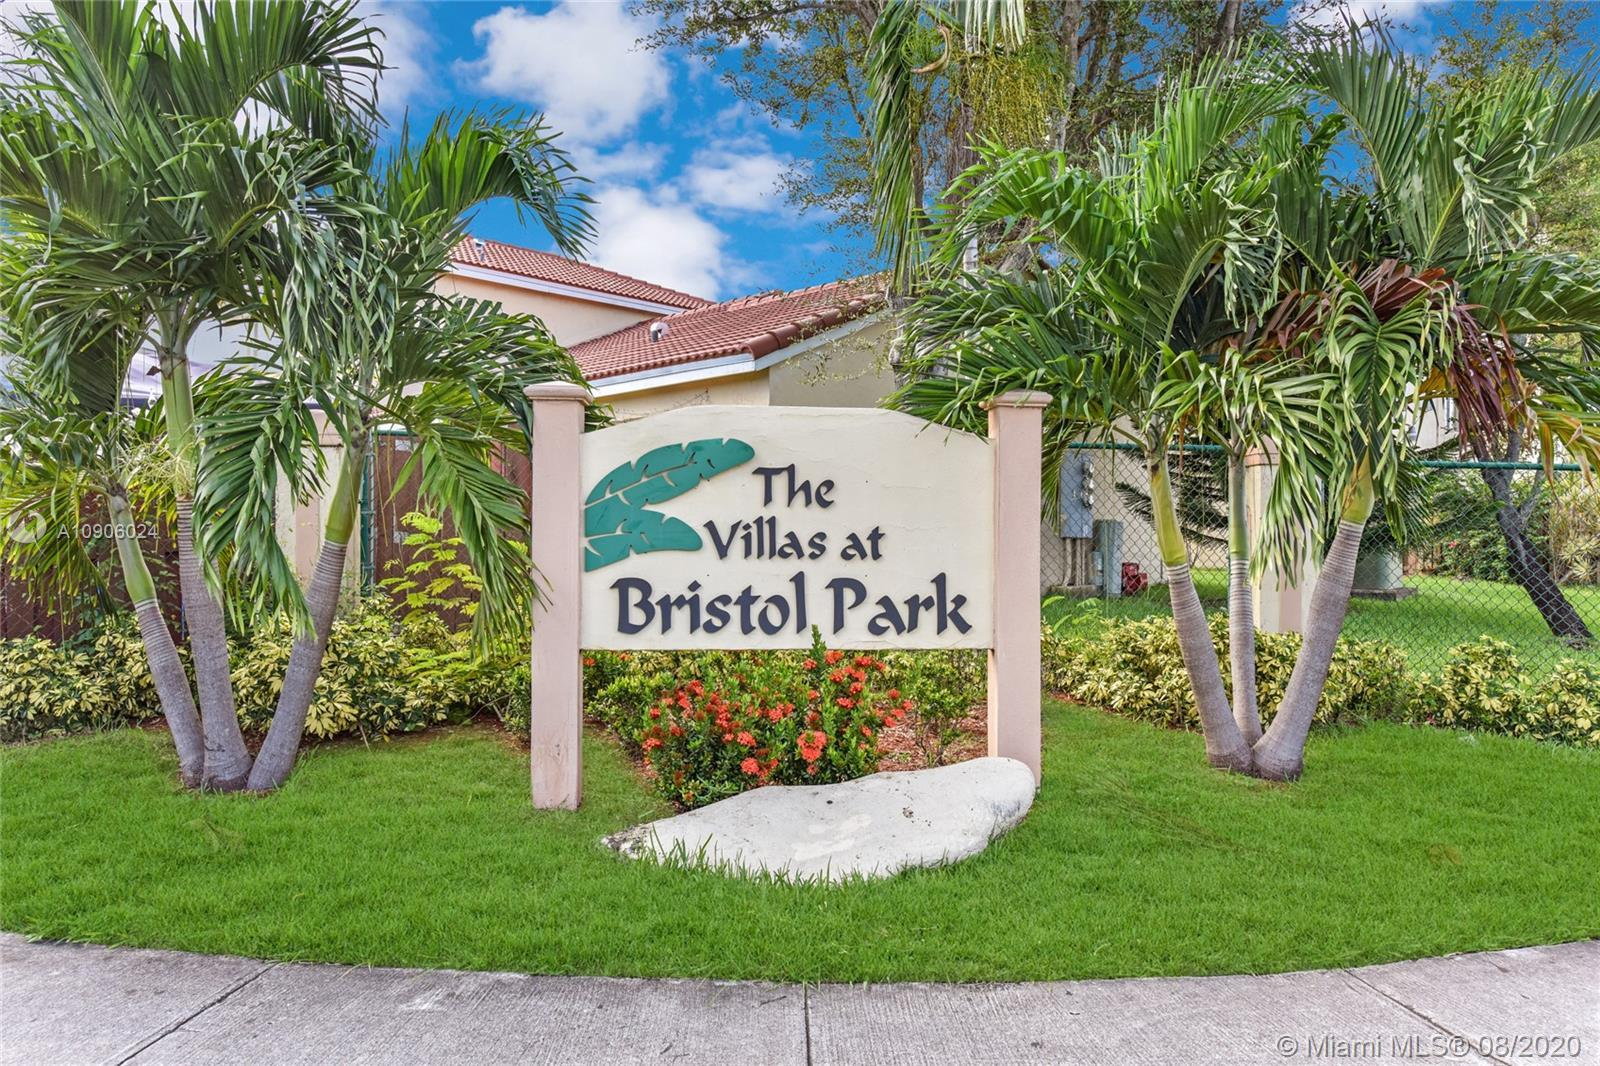 384 NW 114th Ave 20-104, Sweetwater, FL, 33172